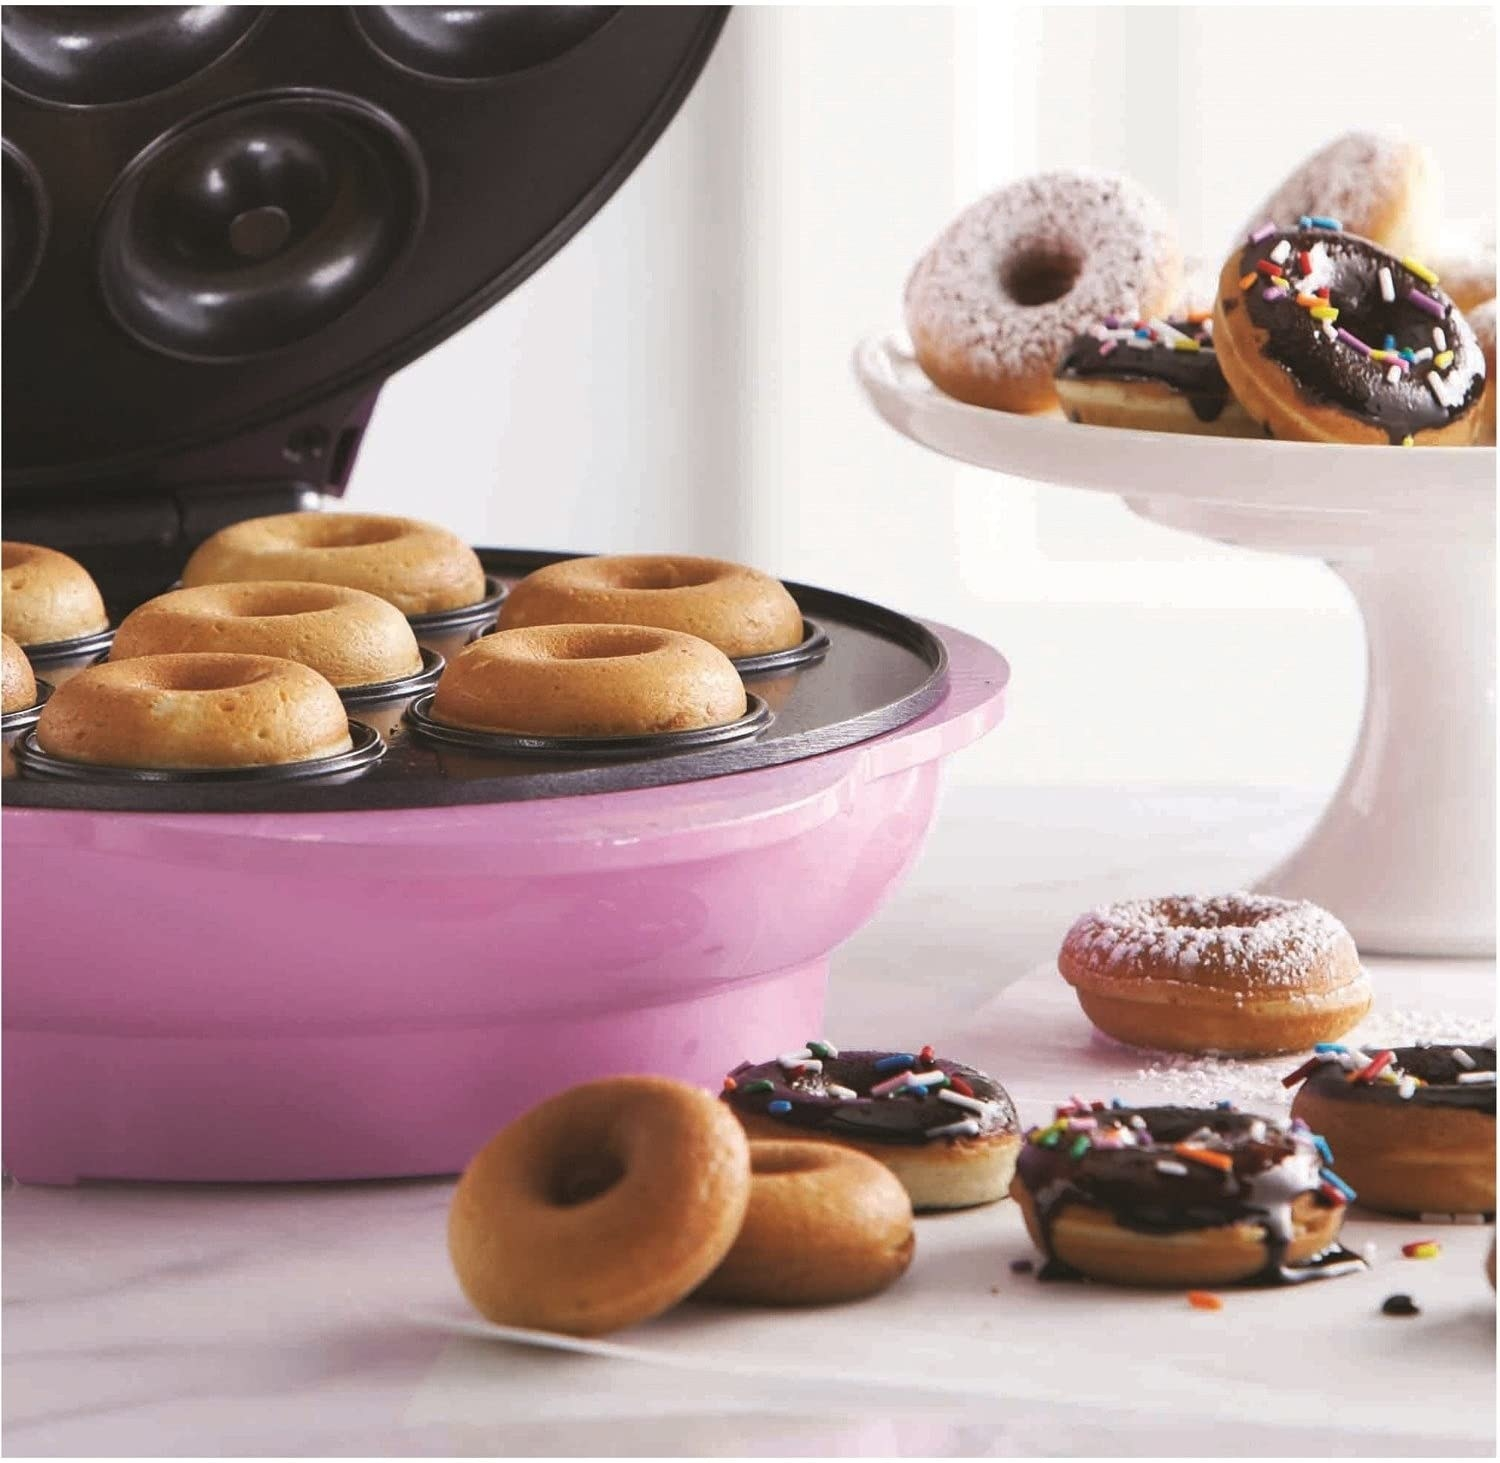 donut maker surrounded by donuts